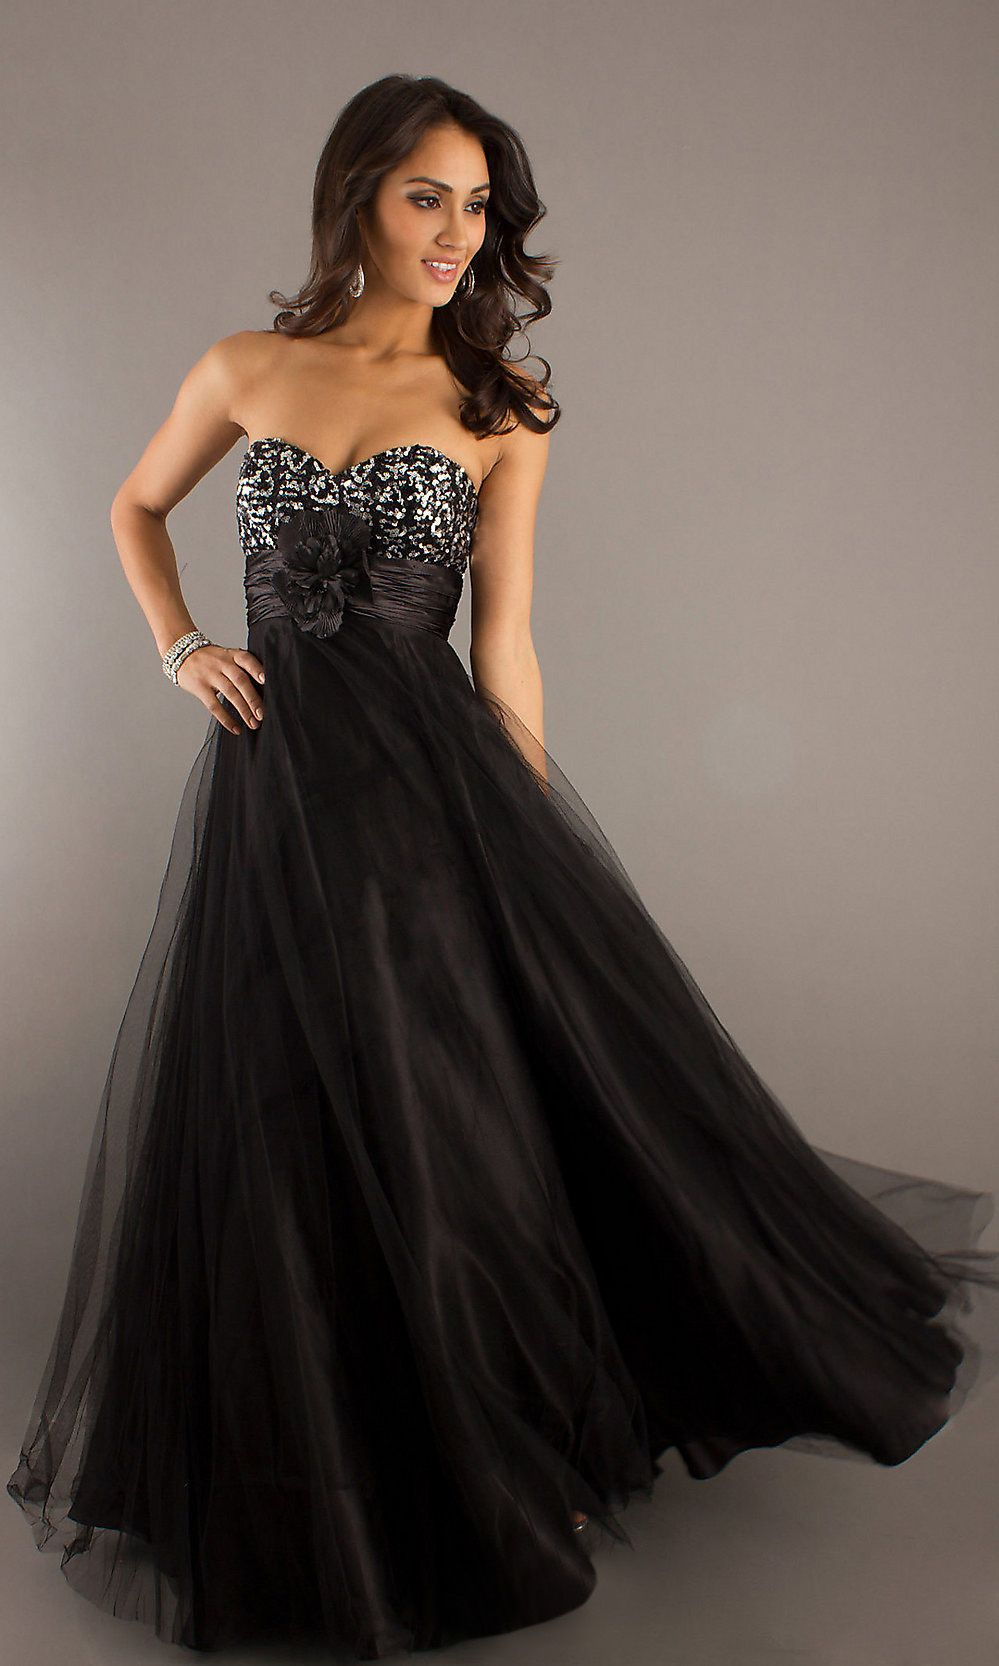 Empire black long prom dress flowy strapless sequin bodice empire black long prom dress flowy strapless sequin bodice ombrellifo Gallery